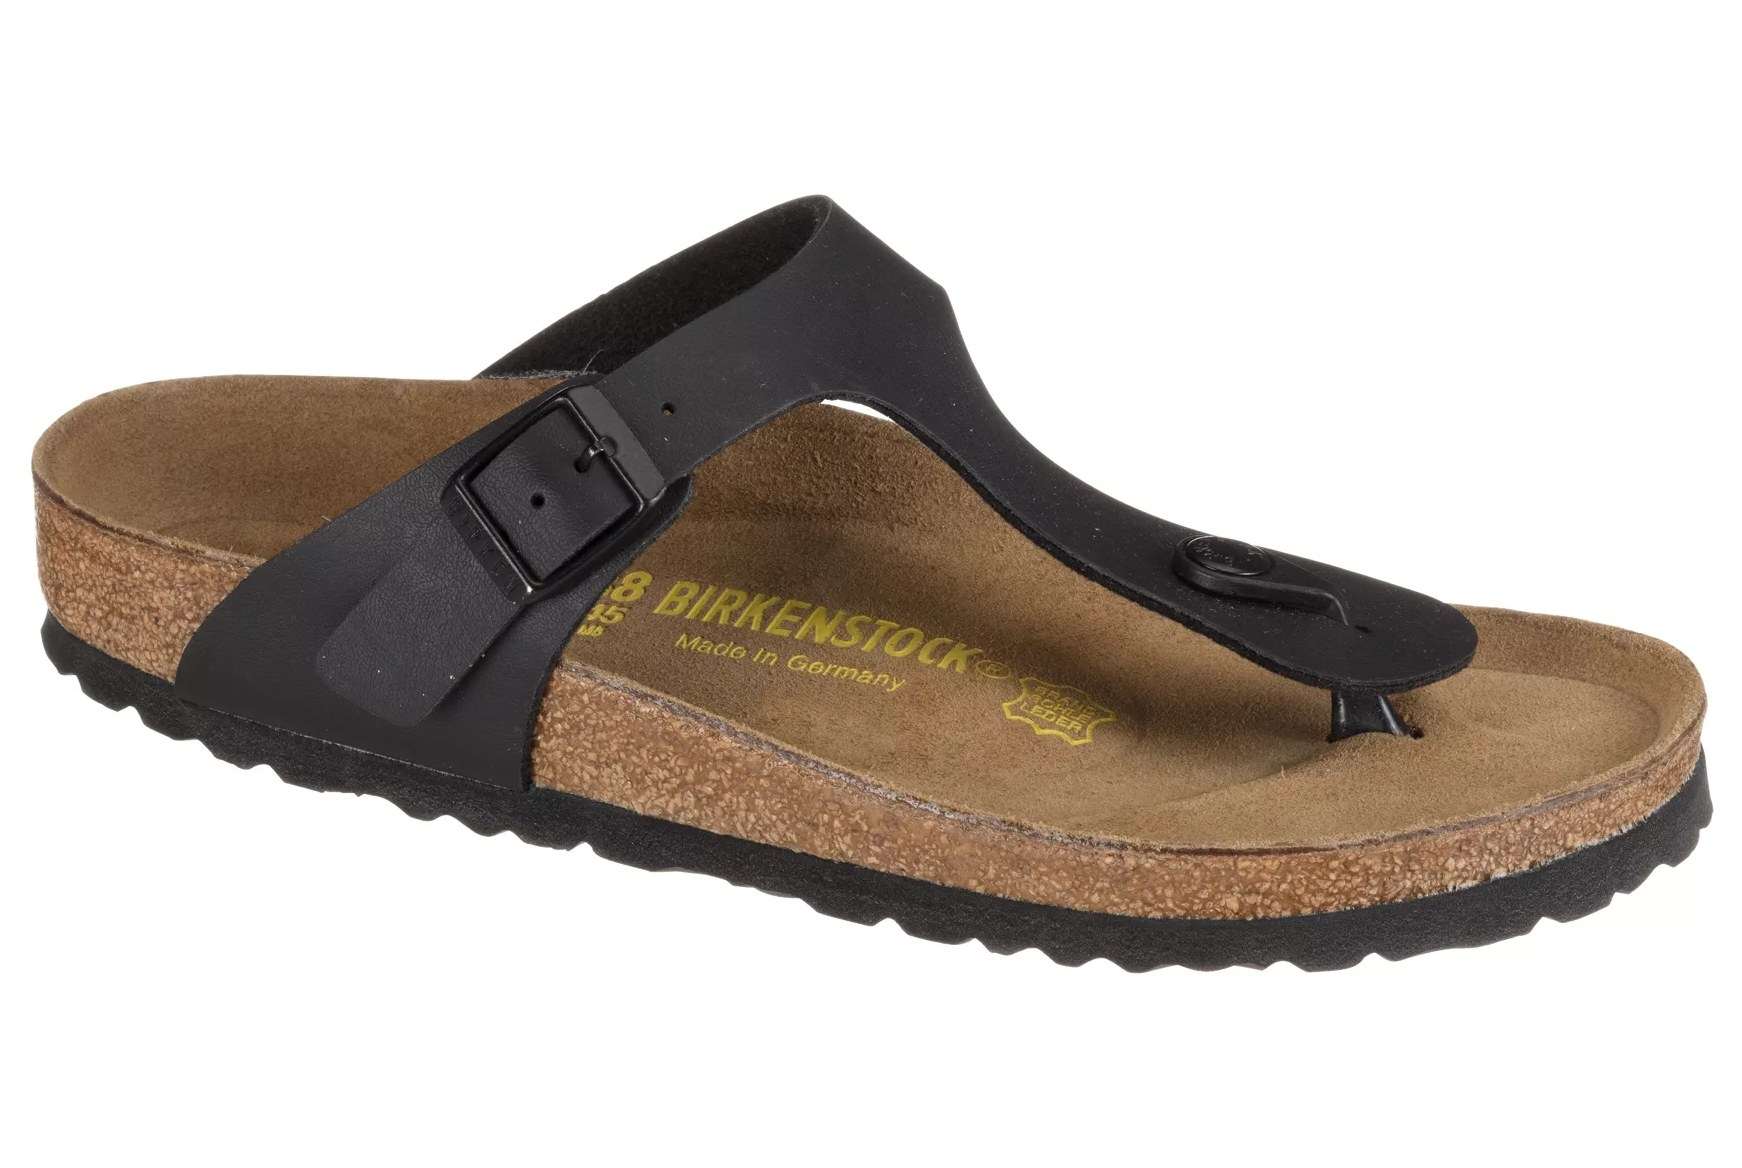 The sandals with a black strap